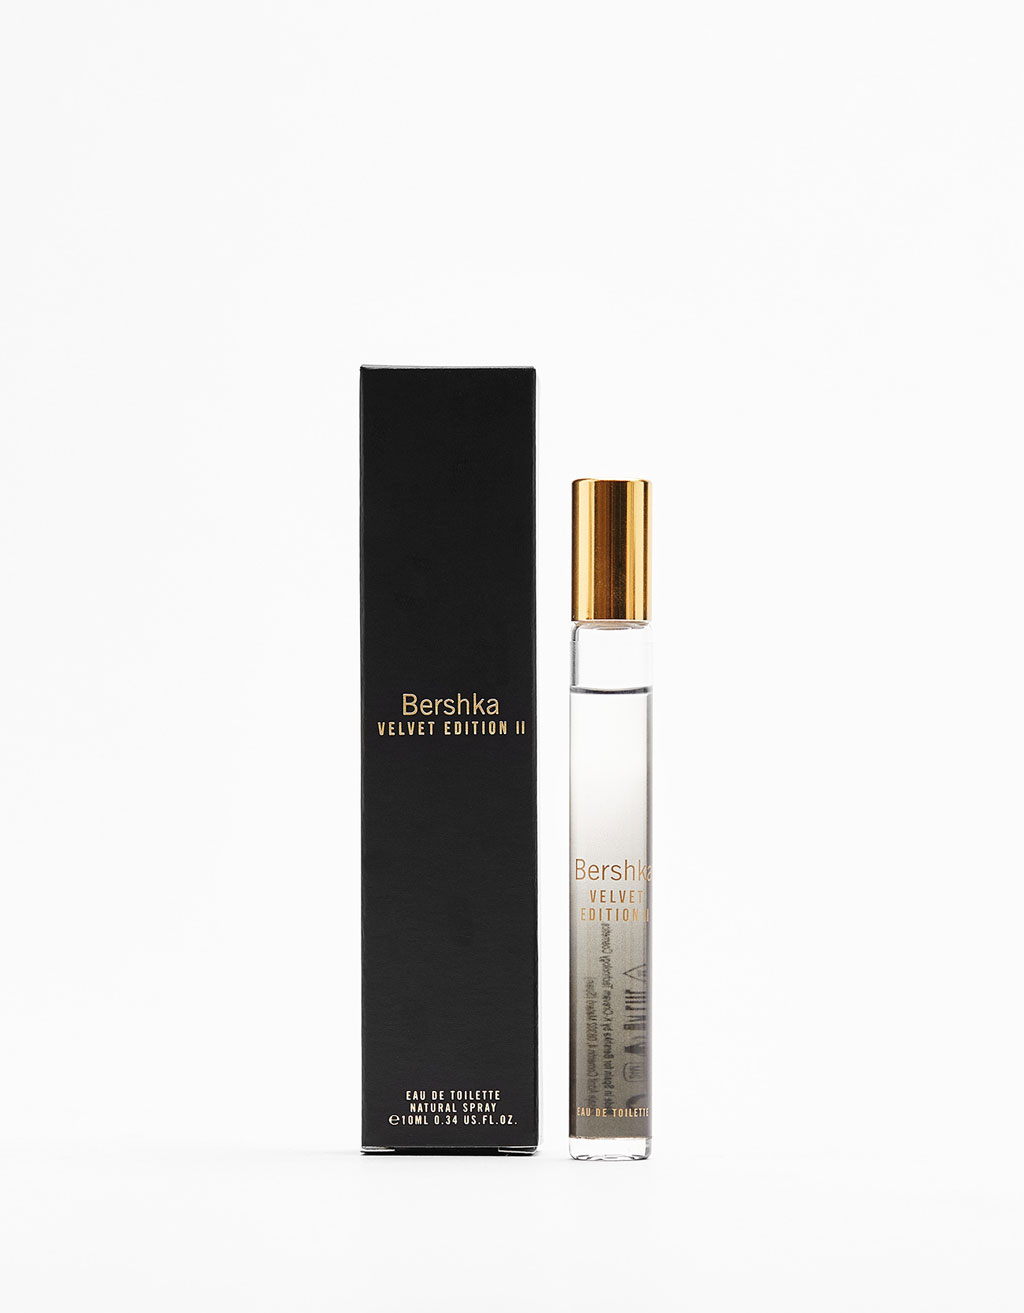 Bershka Velvet Edition II Roll-on Eau de Toilette 10 mL